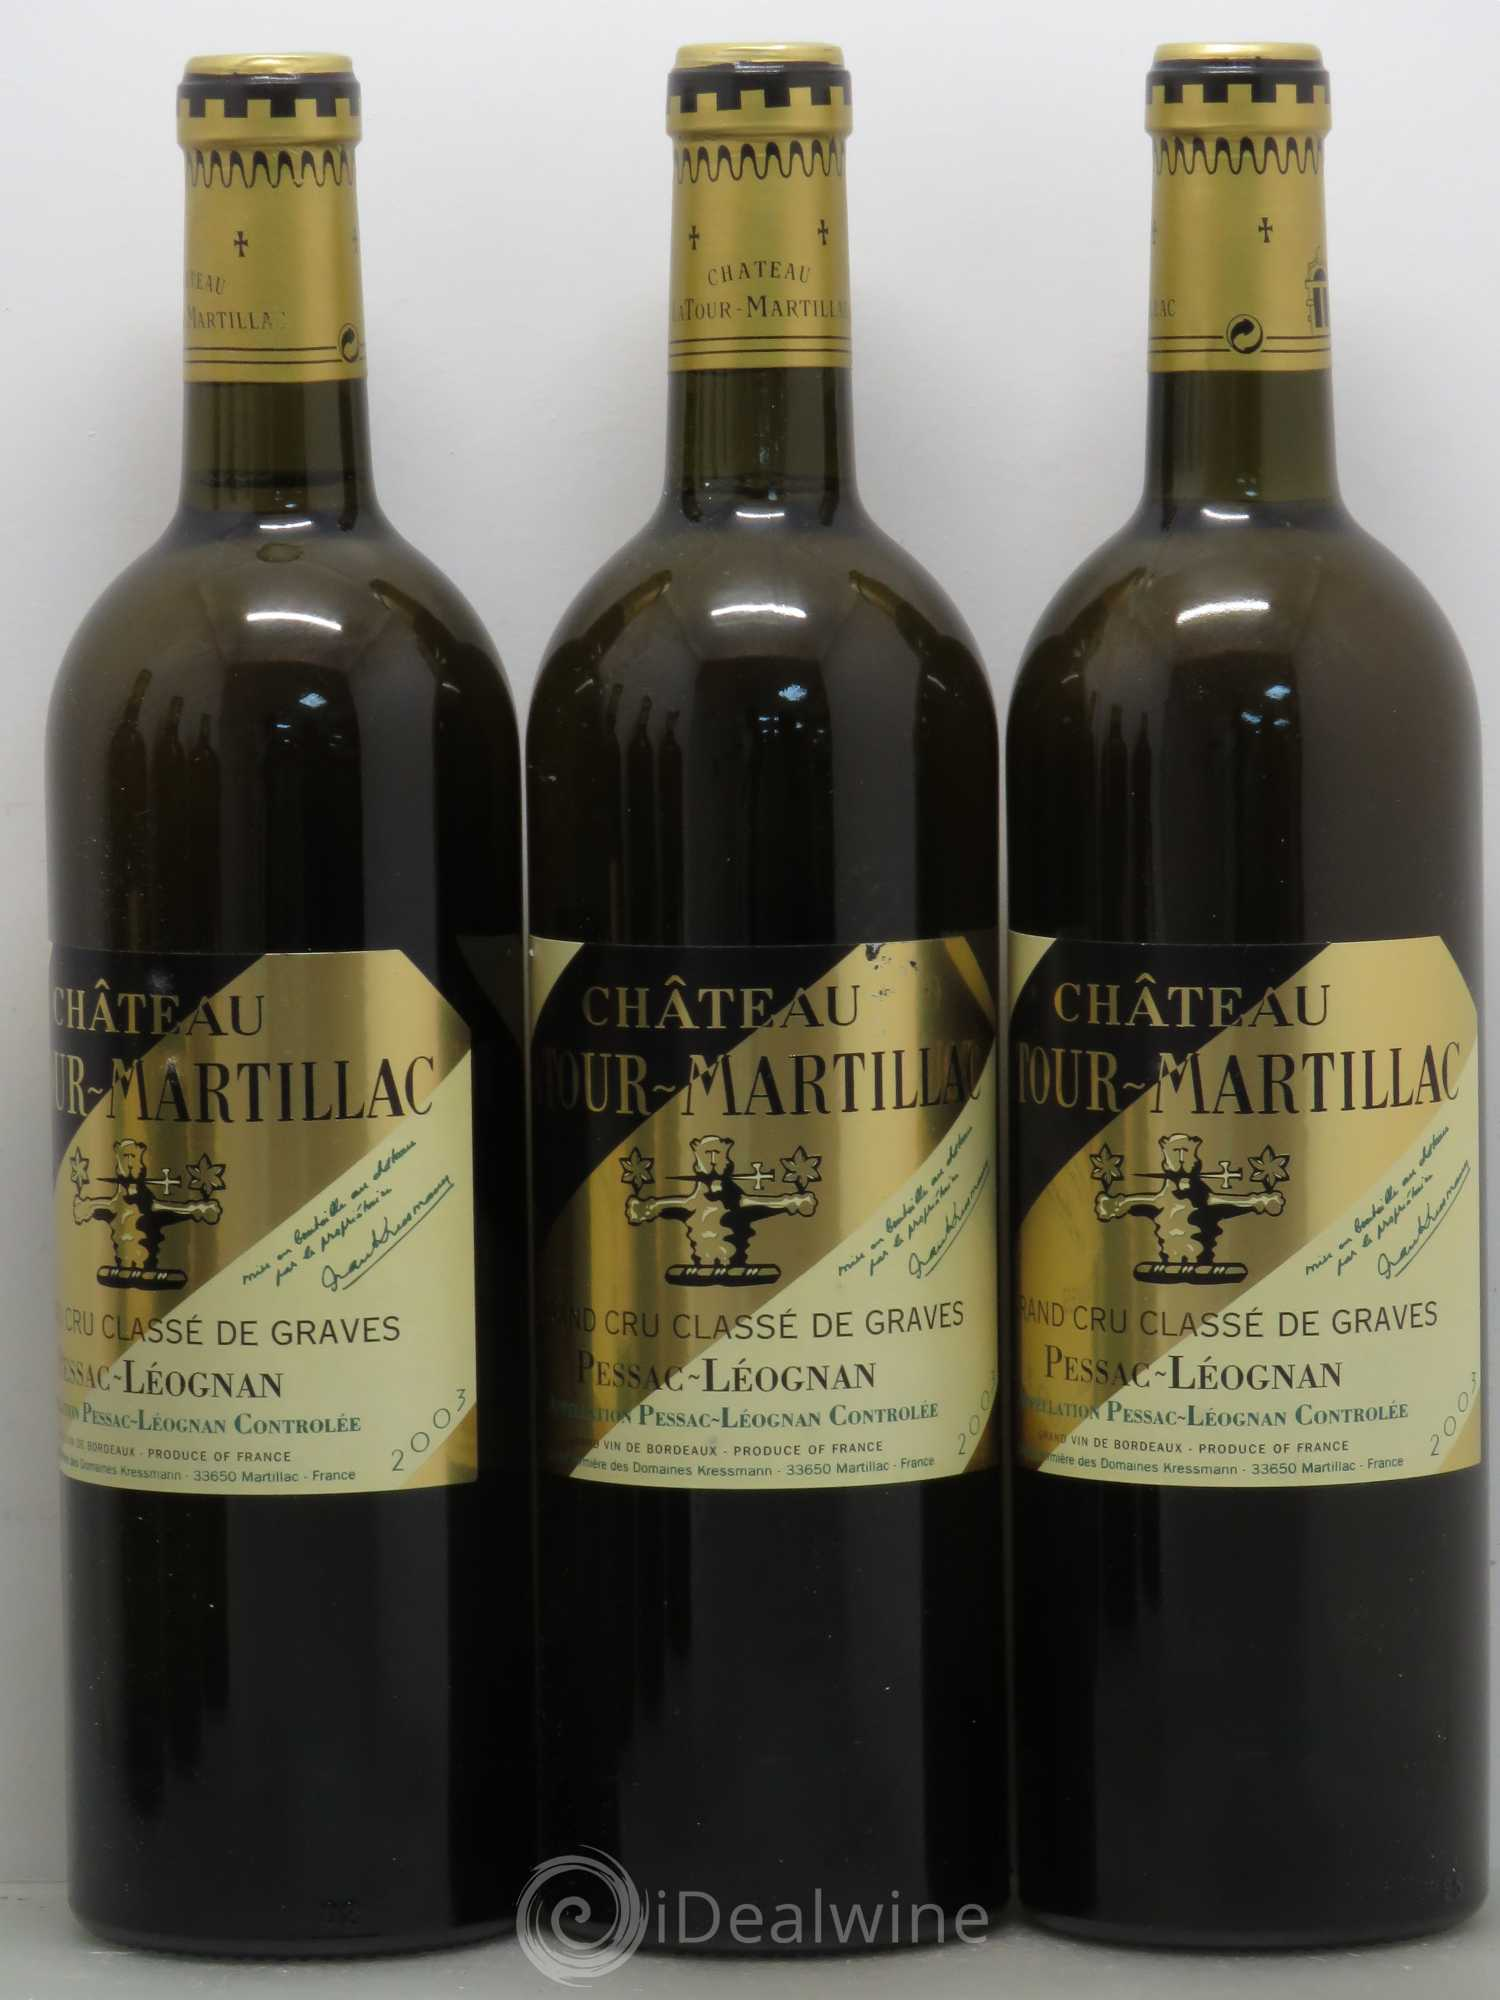 acheter ch teau latour martillac cru class de graves 2003 lot 13559. Black Bedroom Furniture Sets. Home Design Ideas